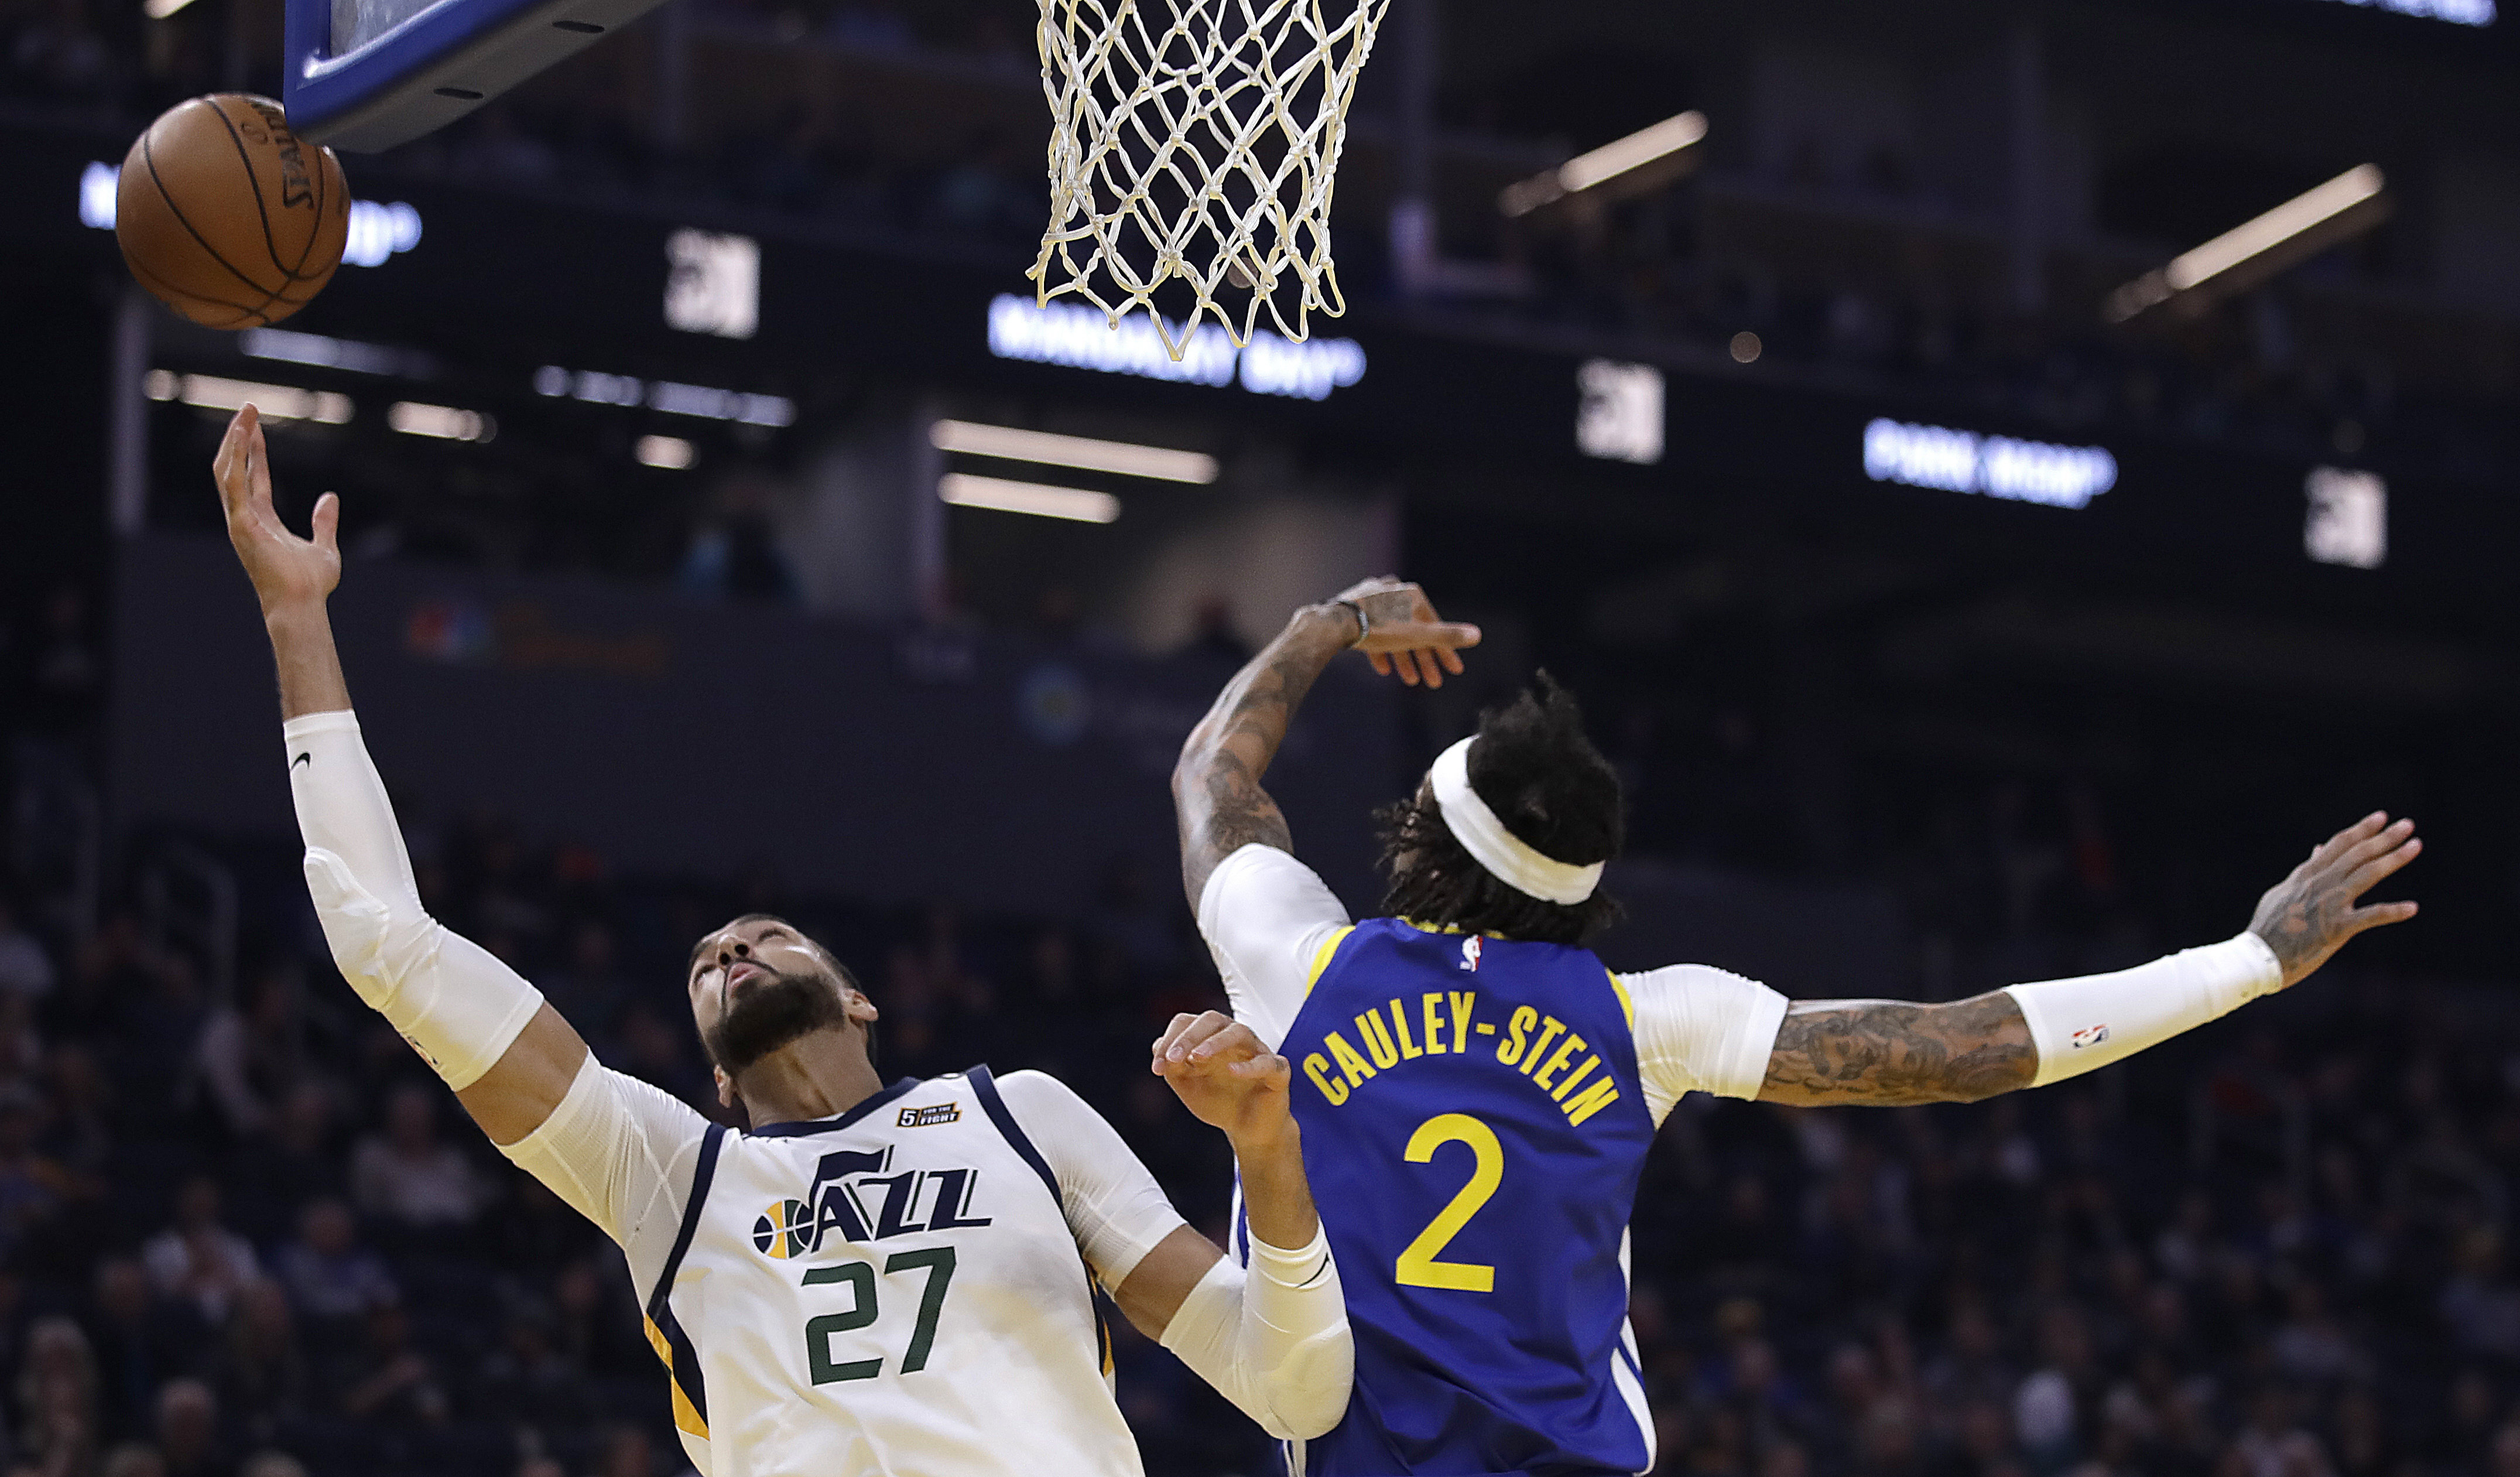 AP sources: Mavs set to acquire Cauley-Stein from Warriors